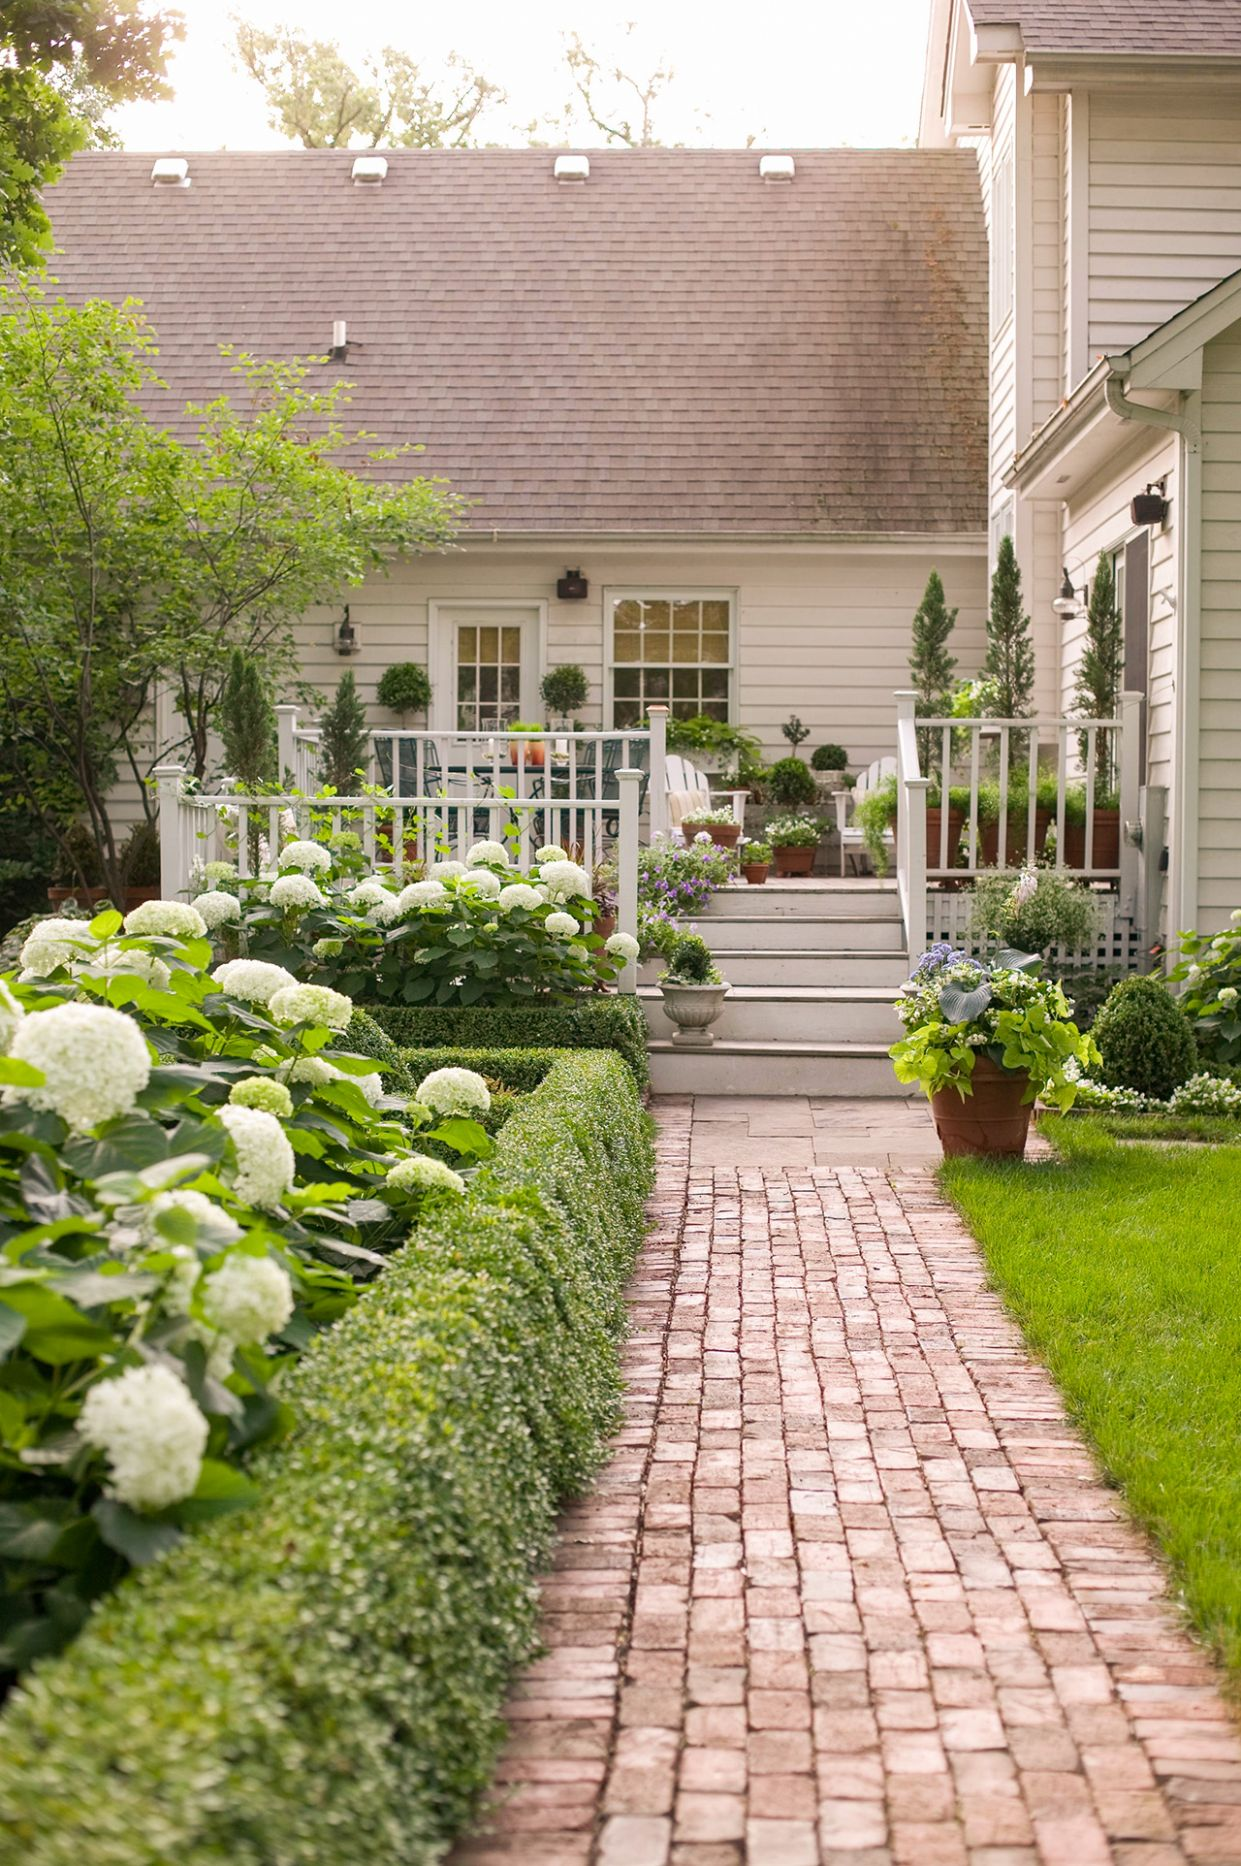 12 Simple Solutions for Small-Space Landscapes | Better Homes ..